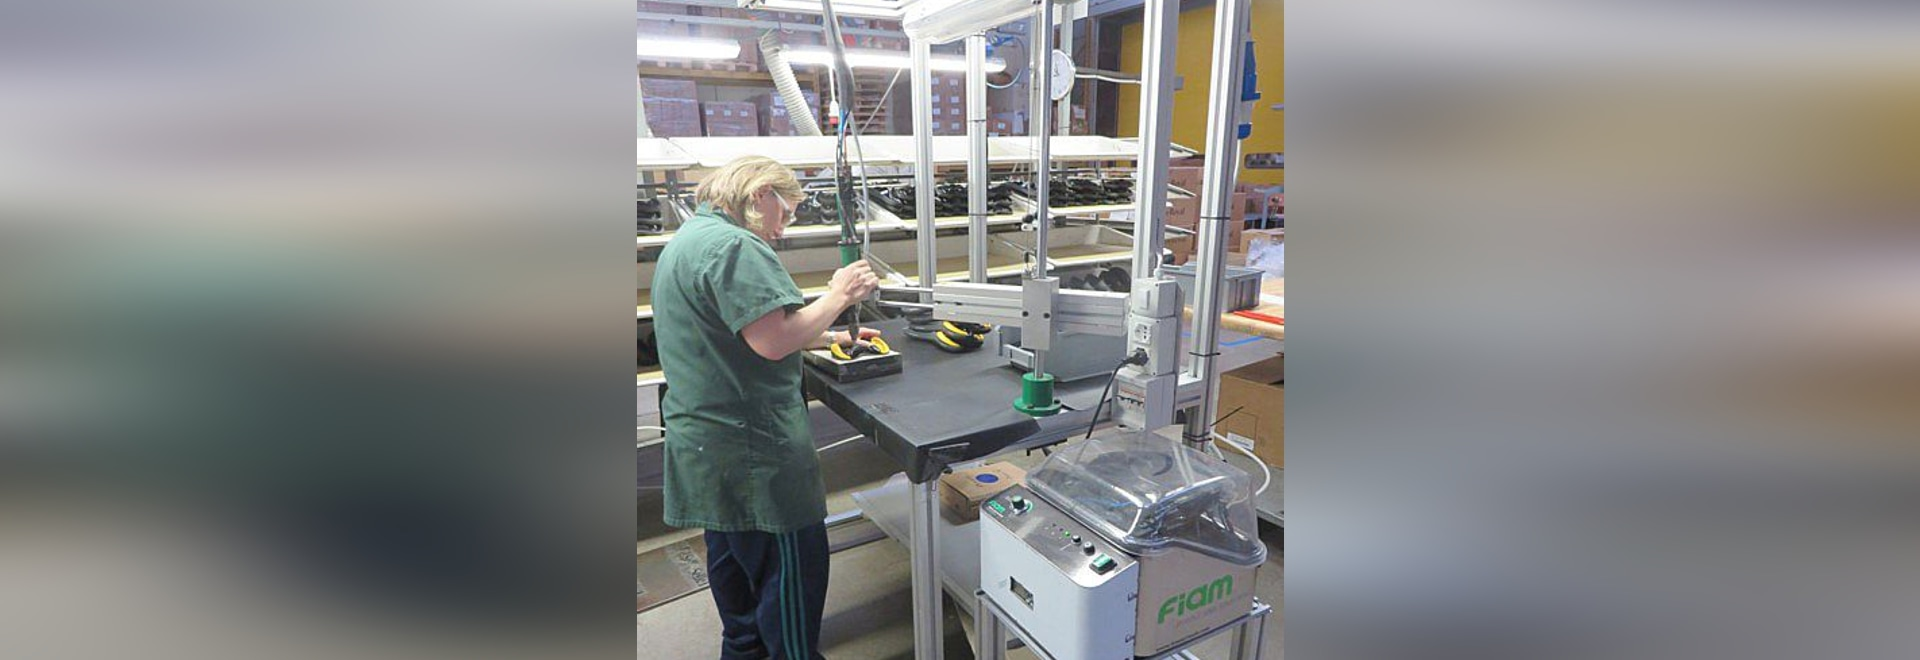 Flexible assembling in modern production processes